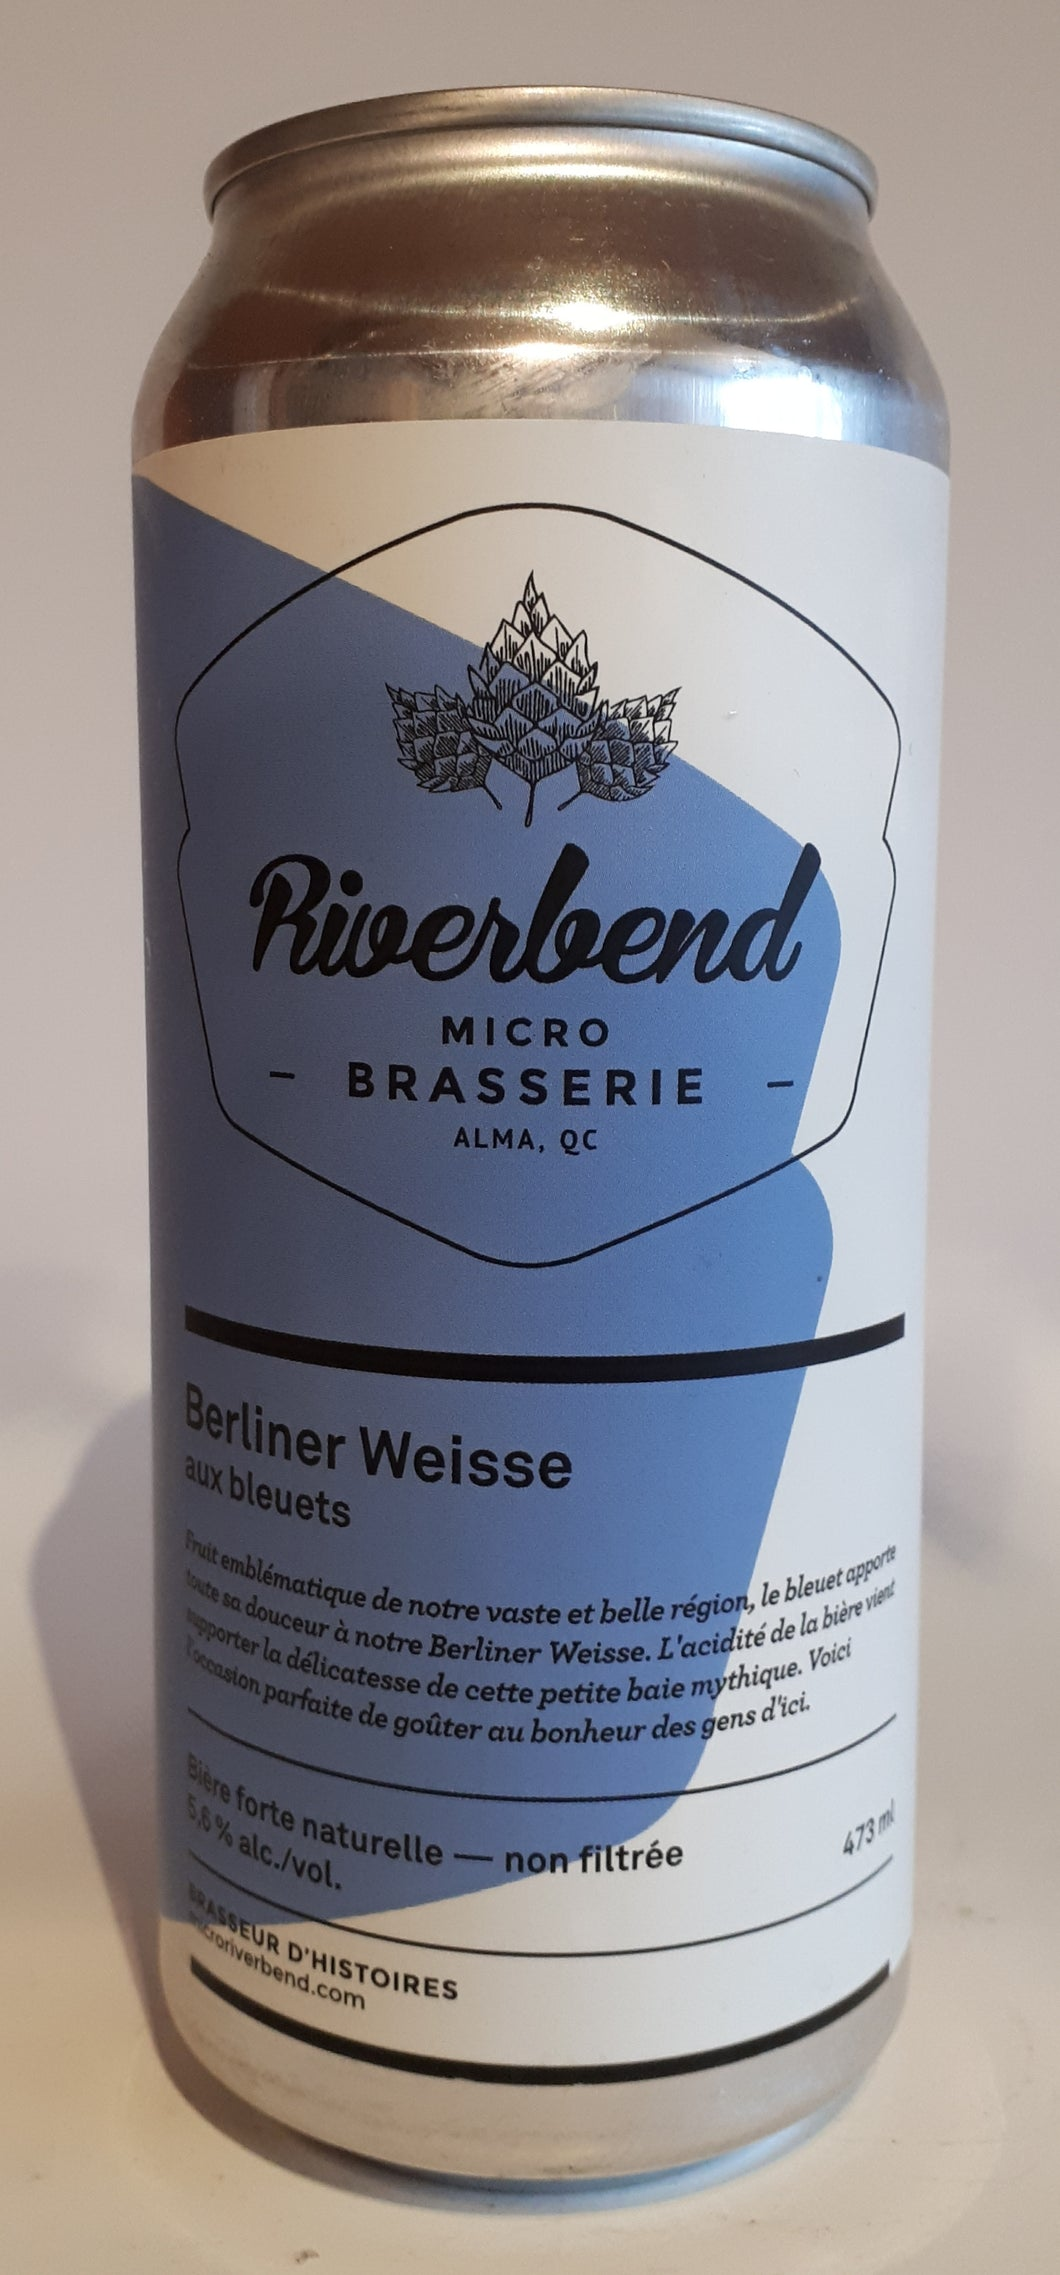 Microbrasserie Riverbend Berline Weisse Bleuet 473ml